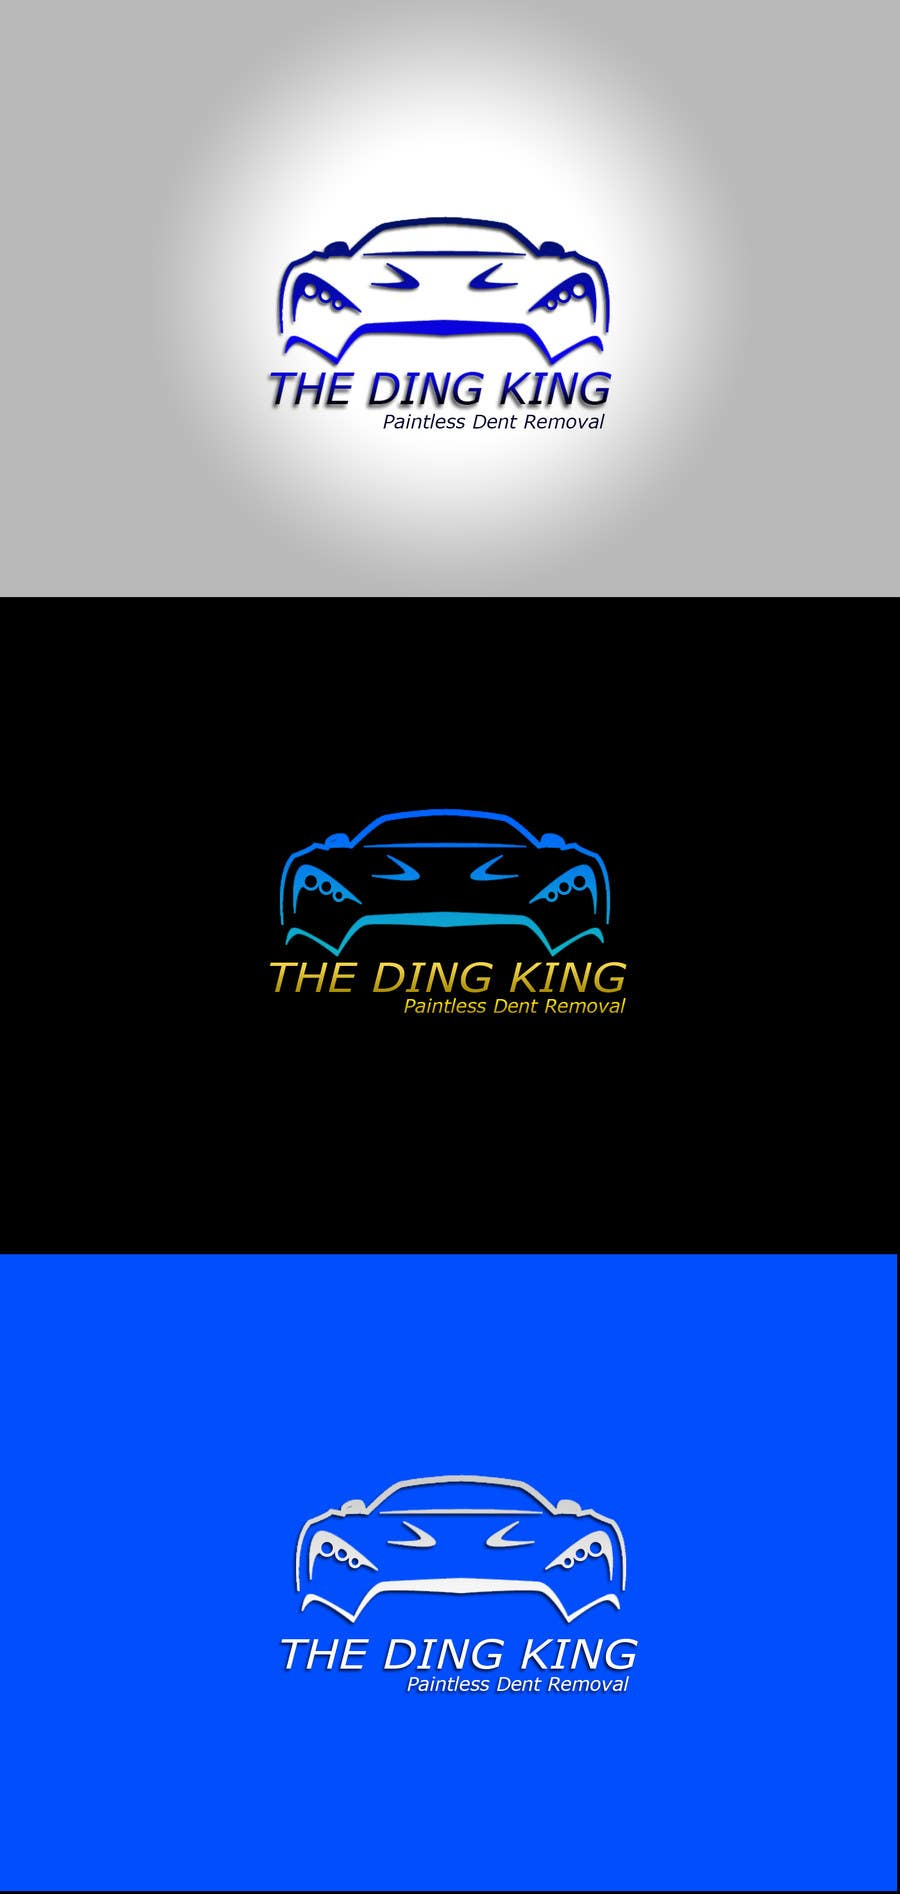 Penyertaan Peraduan #19 untuk Develop a Corporate Identity for The Ding Kings